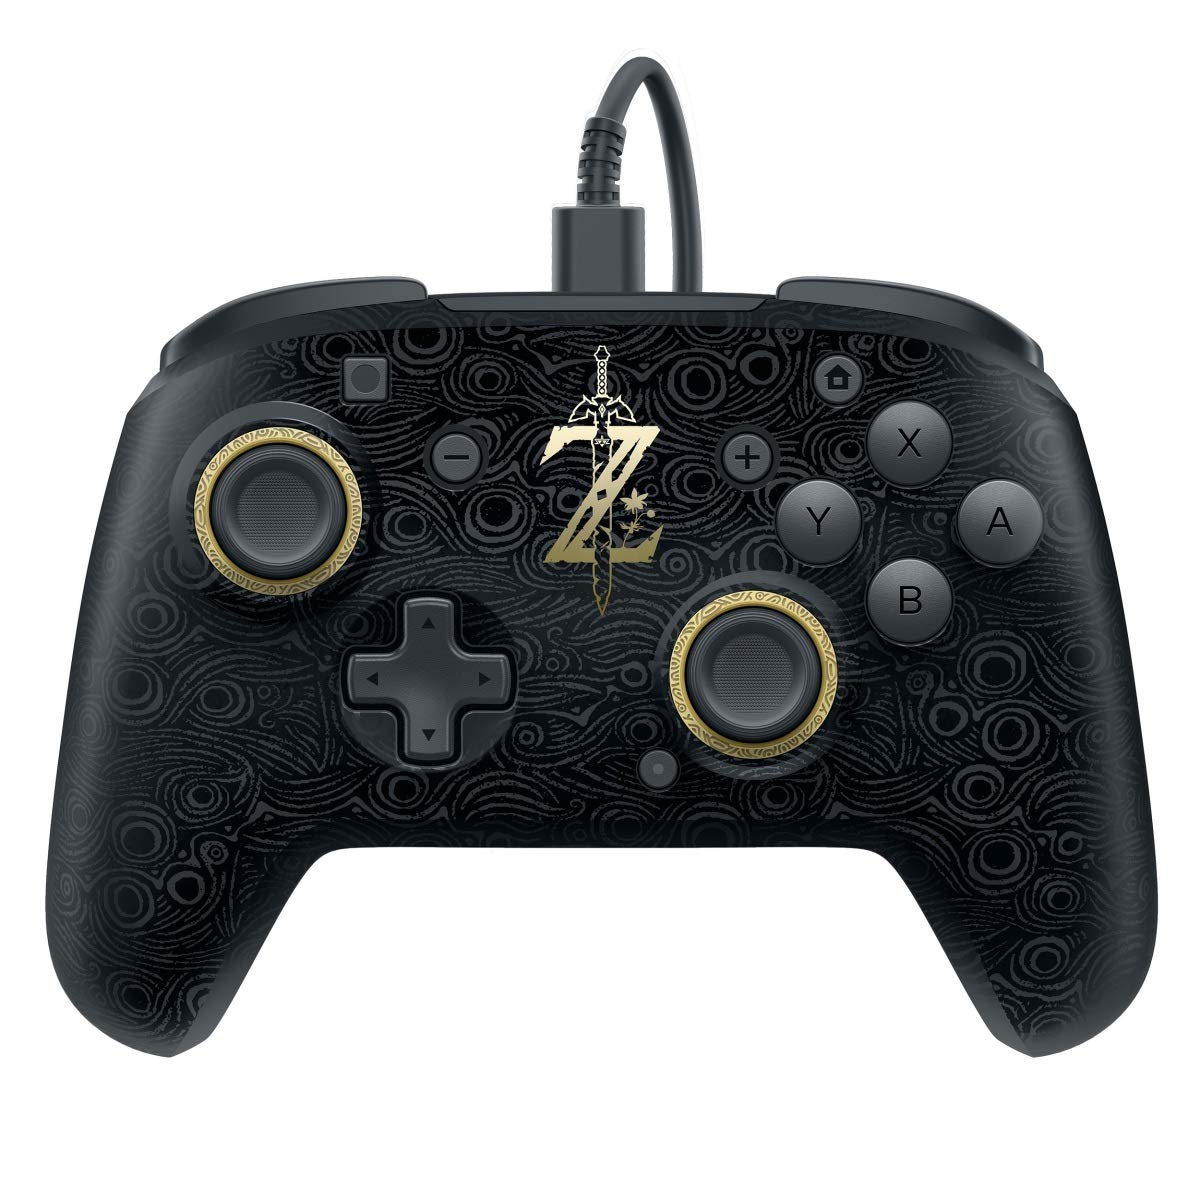 Pdp Gaming Zelda Wired Pro Controller Faceplate Black Gold Nintendo Switch Video Games